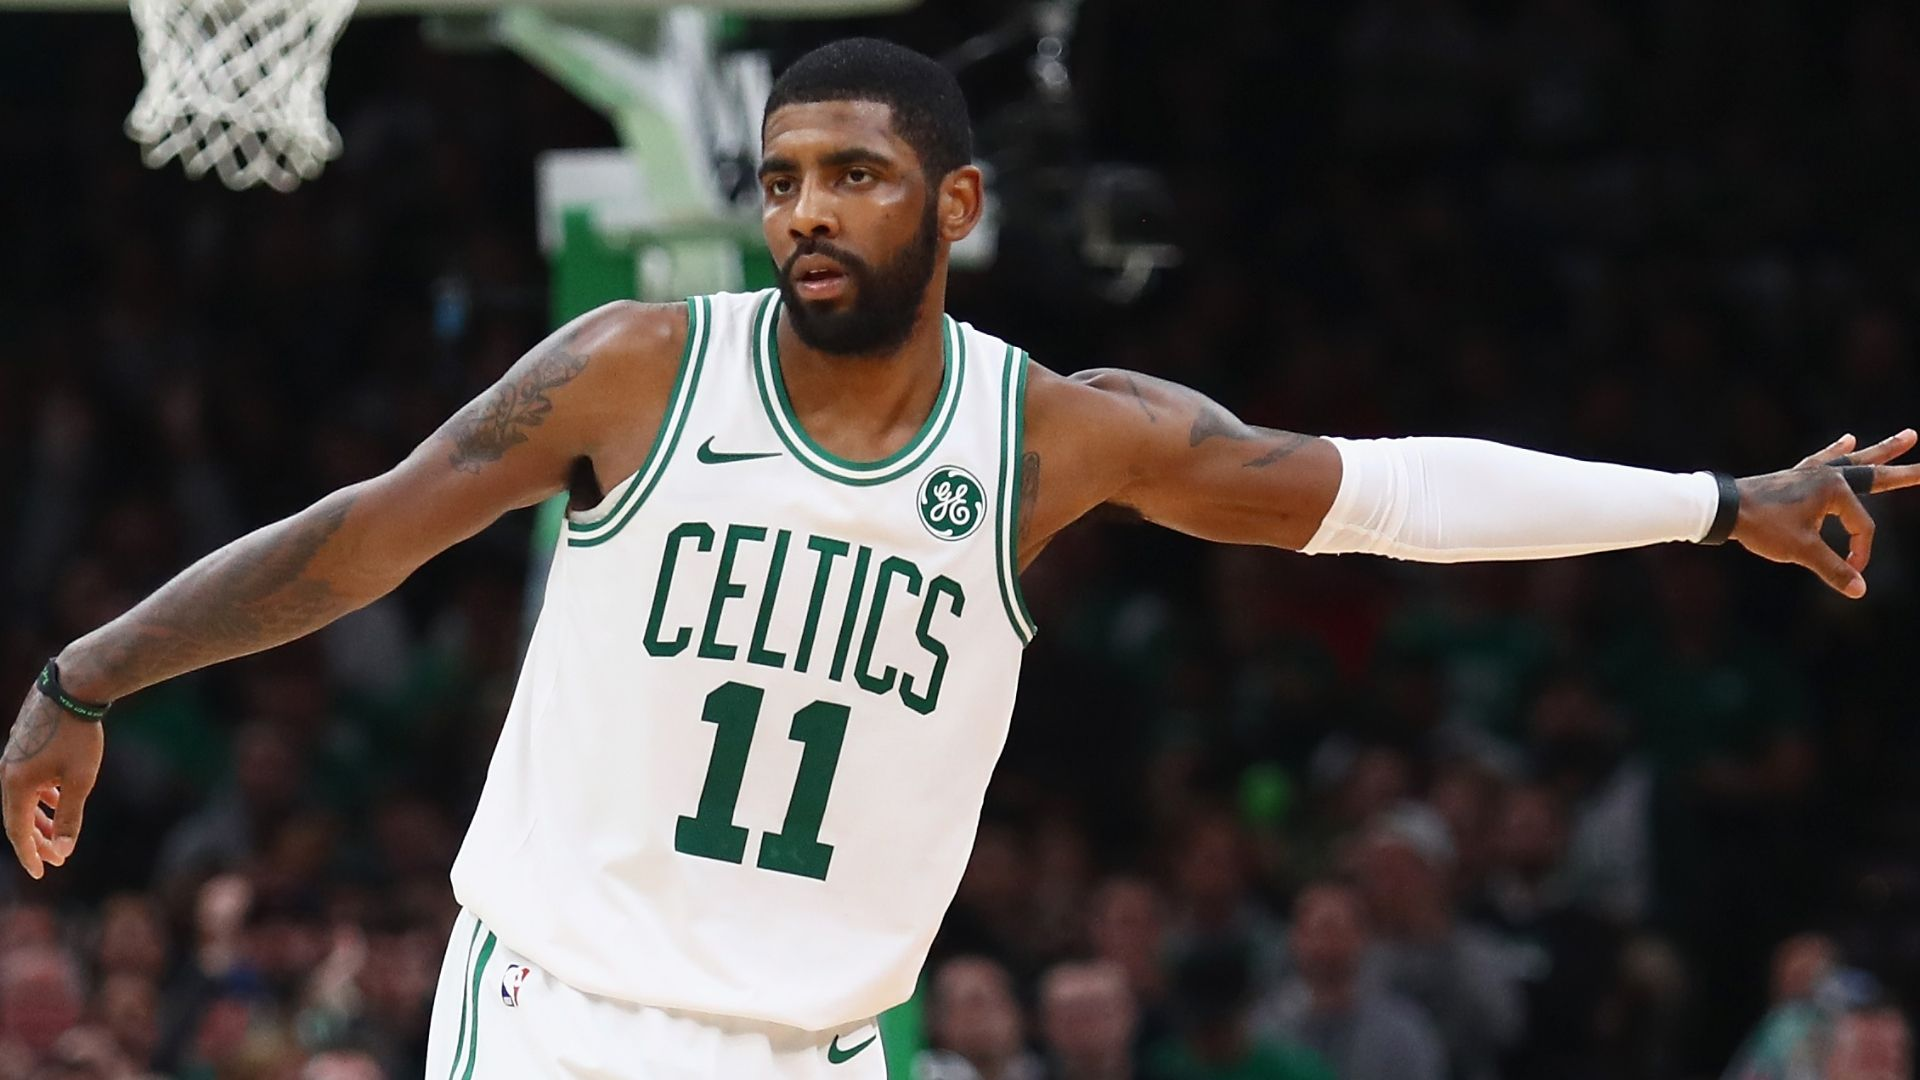 Kyrie drops 43 in OT win for Celtics